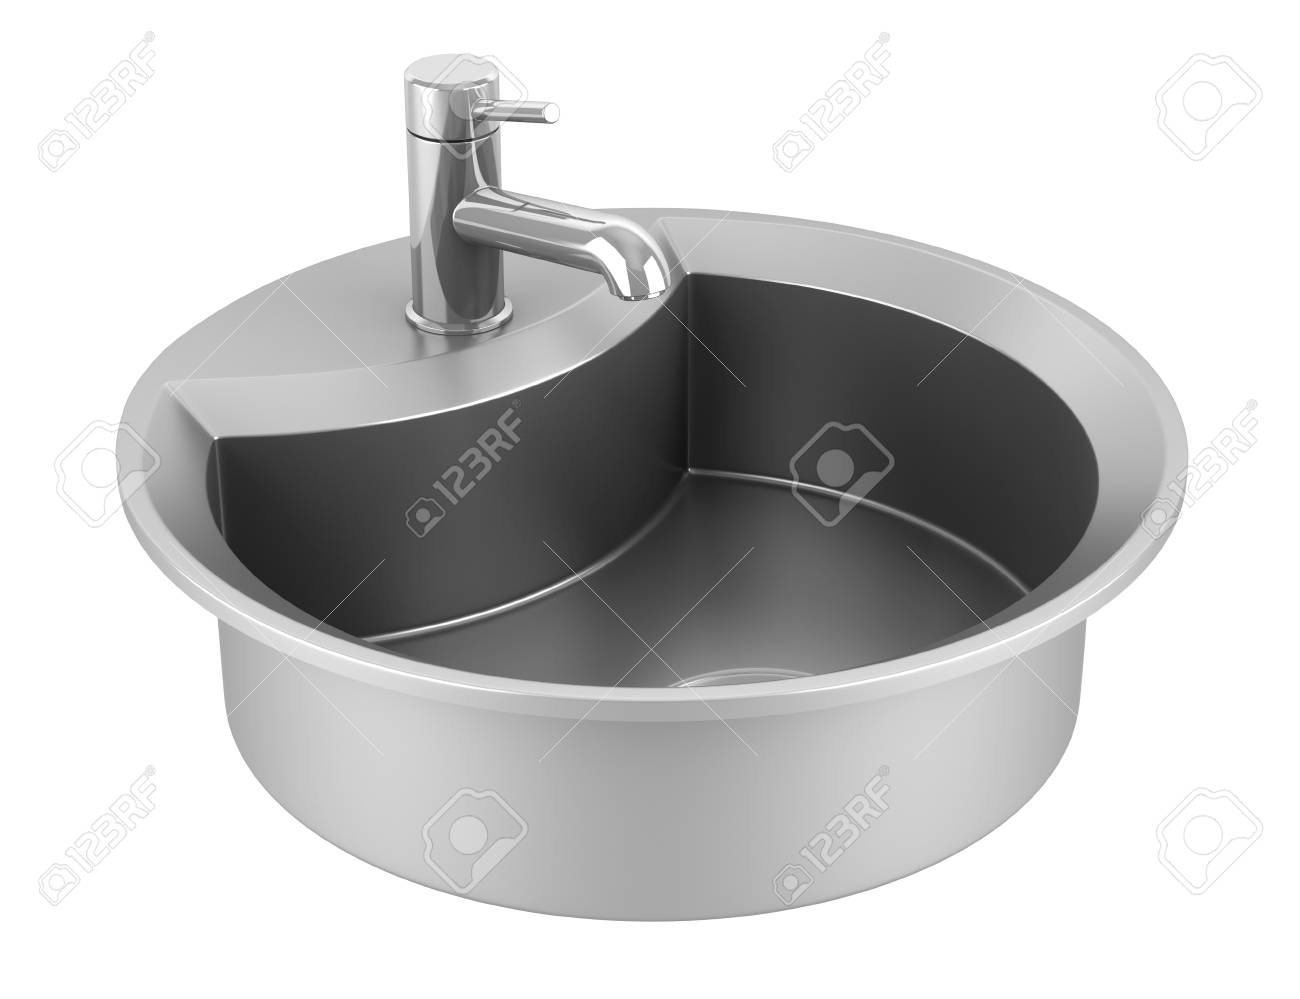 modern metal sink isolated on white background Stock Photo - 9464891